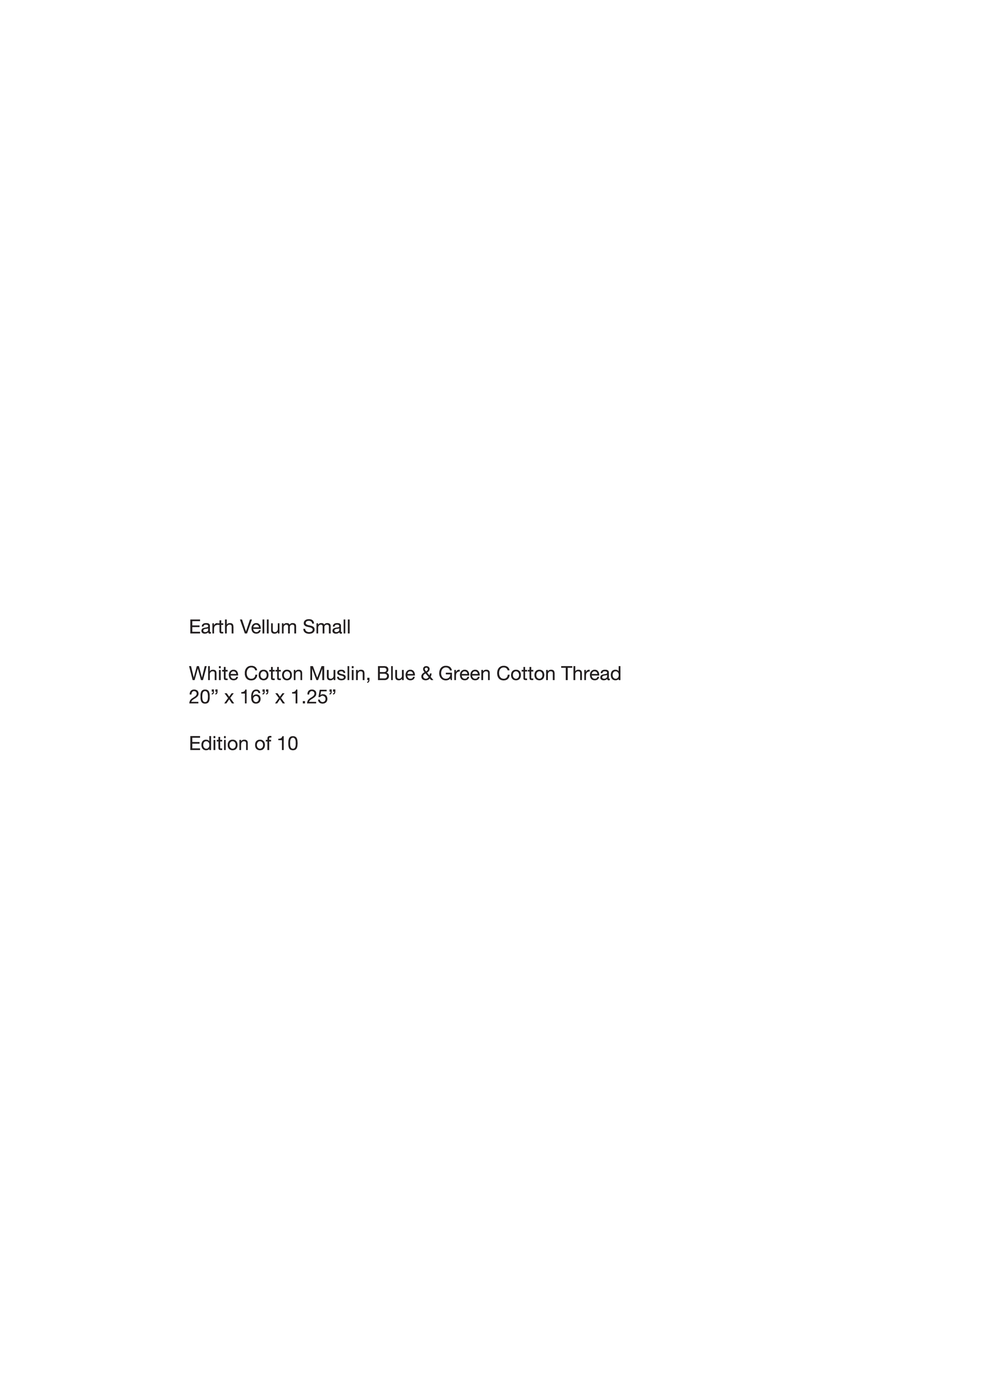 Nicole Patel Earth Vellum Small Text-01.png